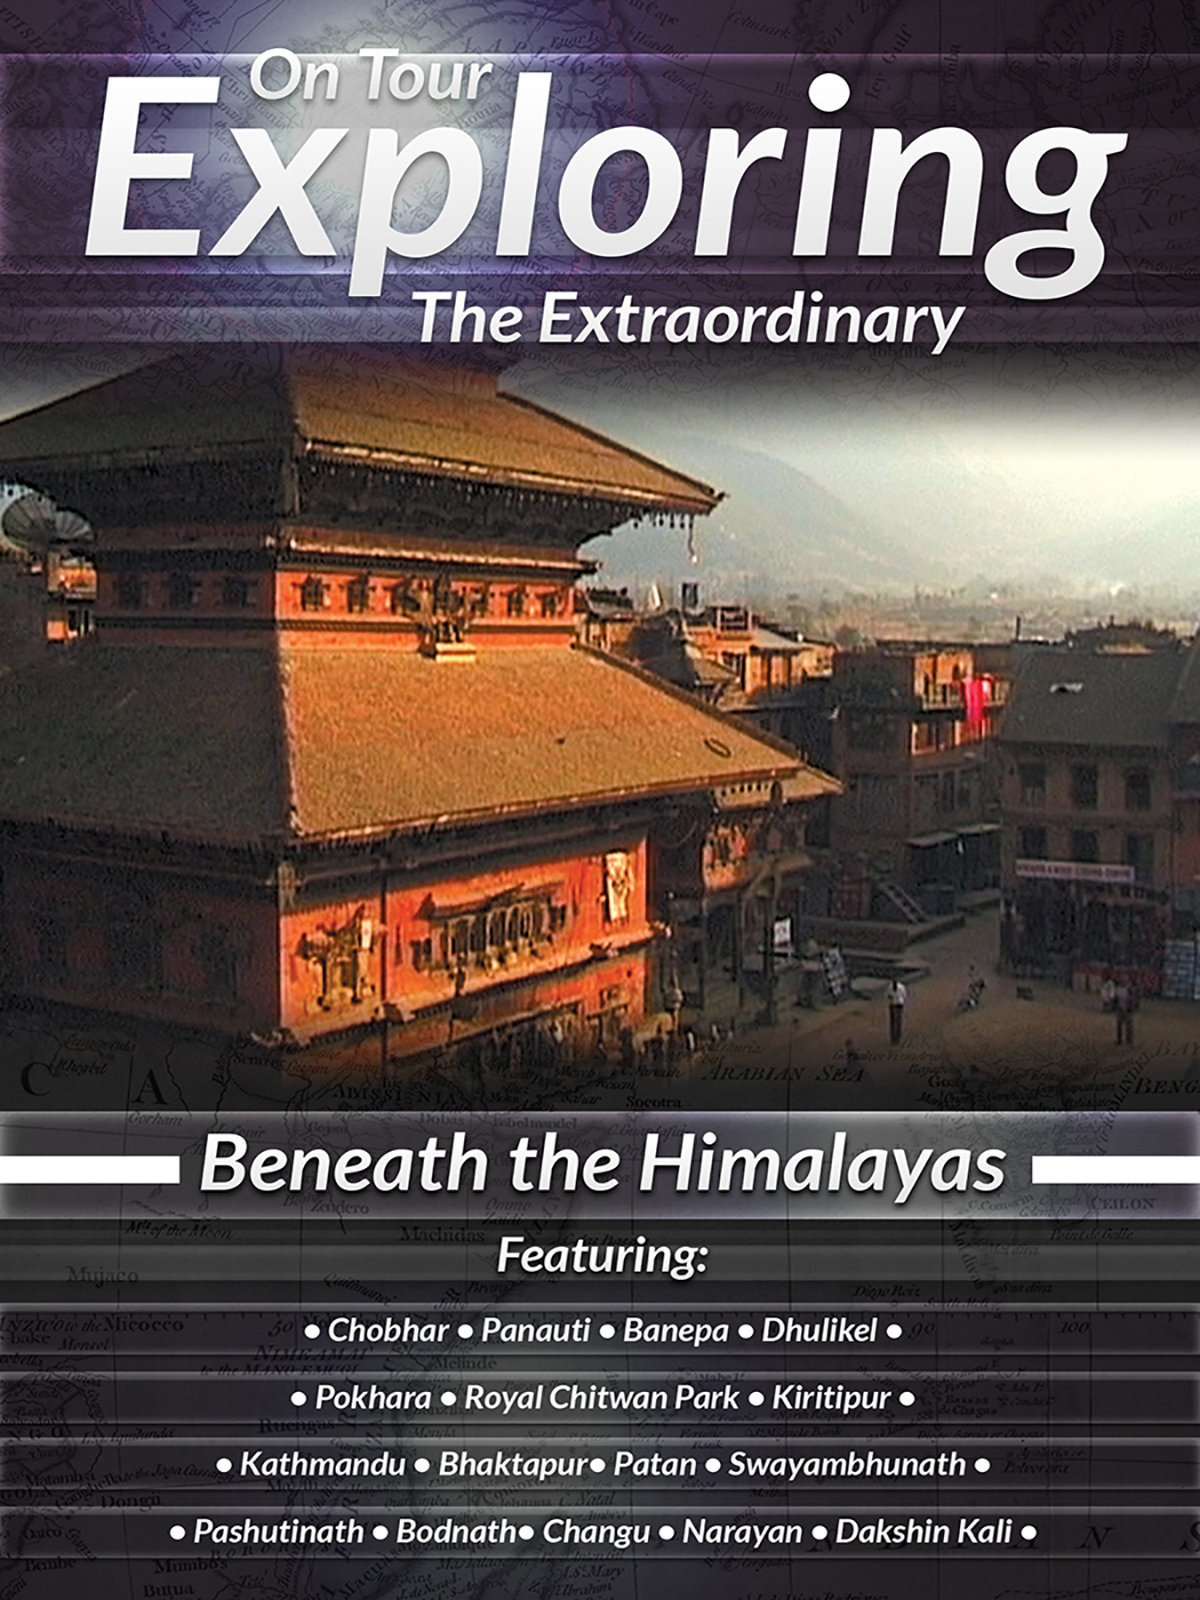 On Tour Exploring the Extraordinary Beneath the Himalayas